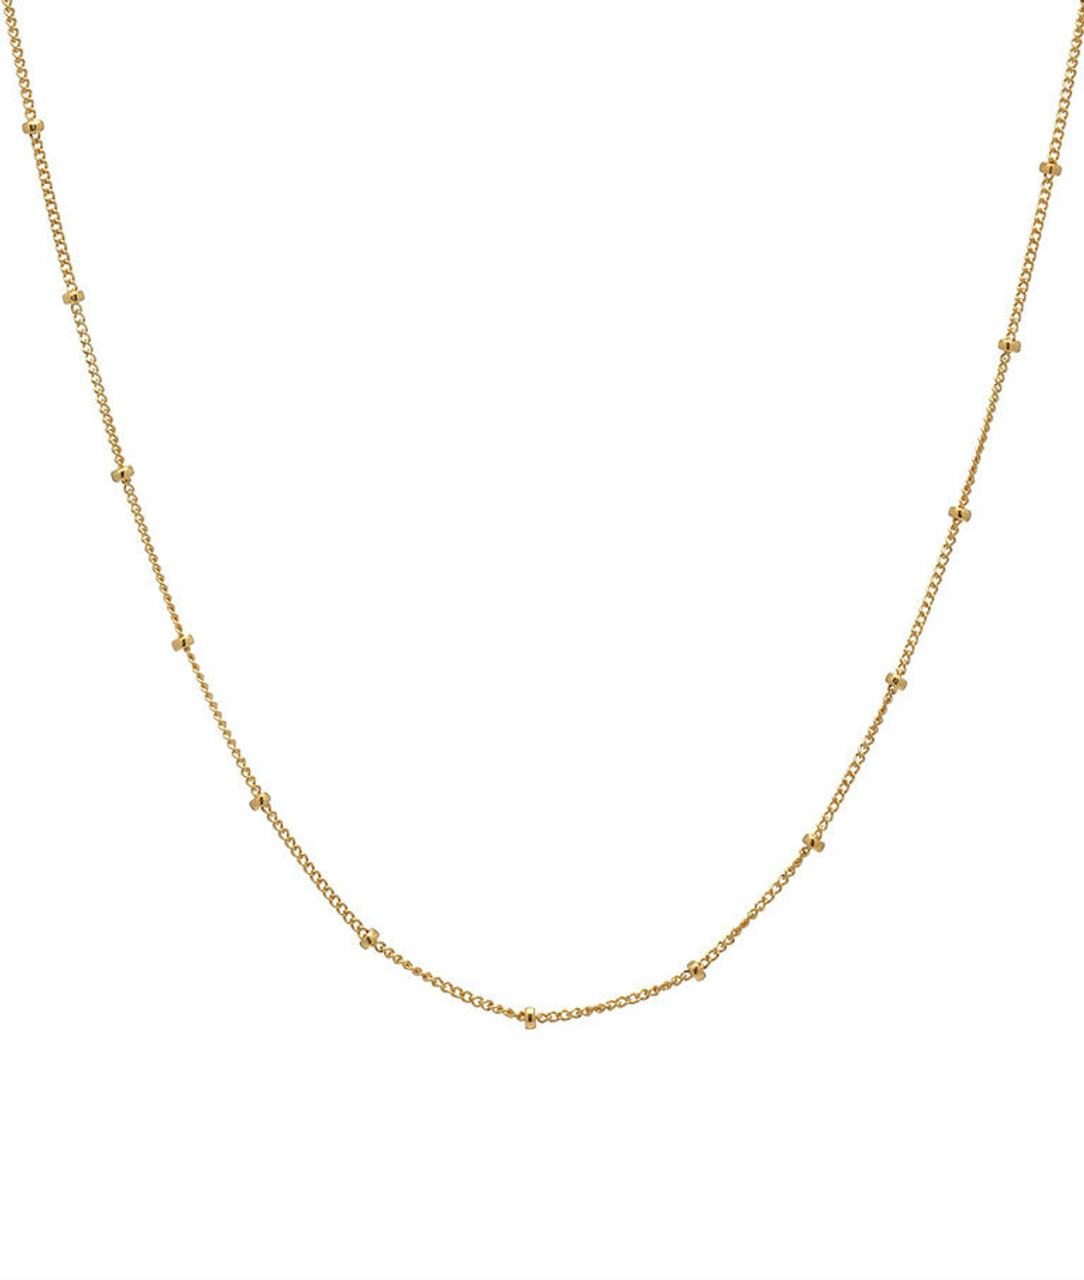 14k gold segment chain link necklace